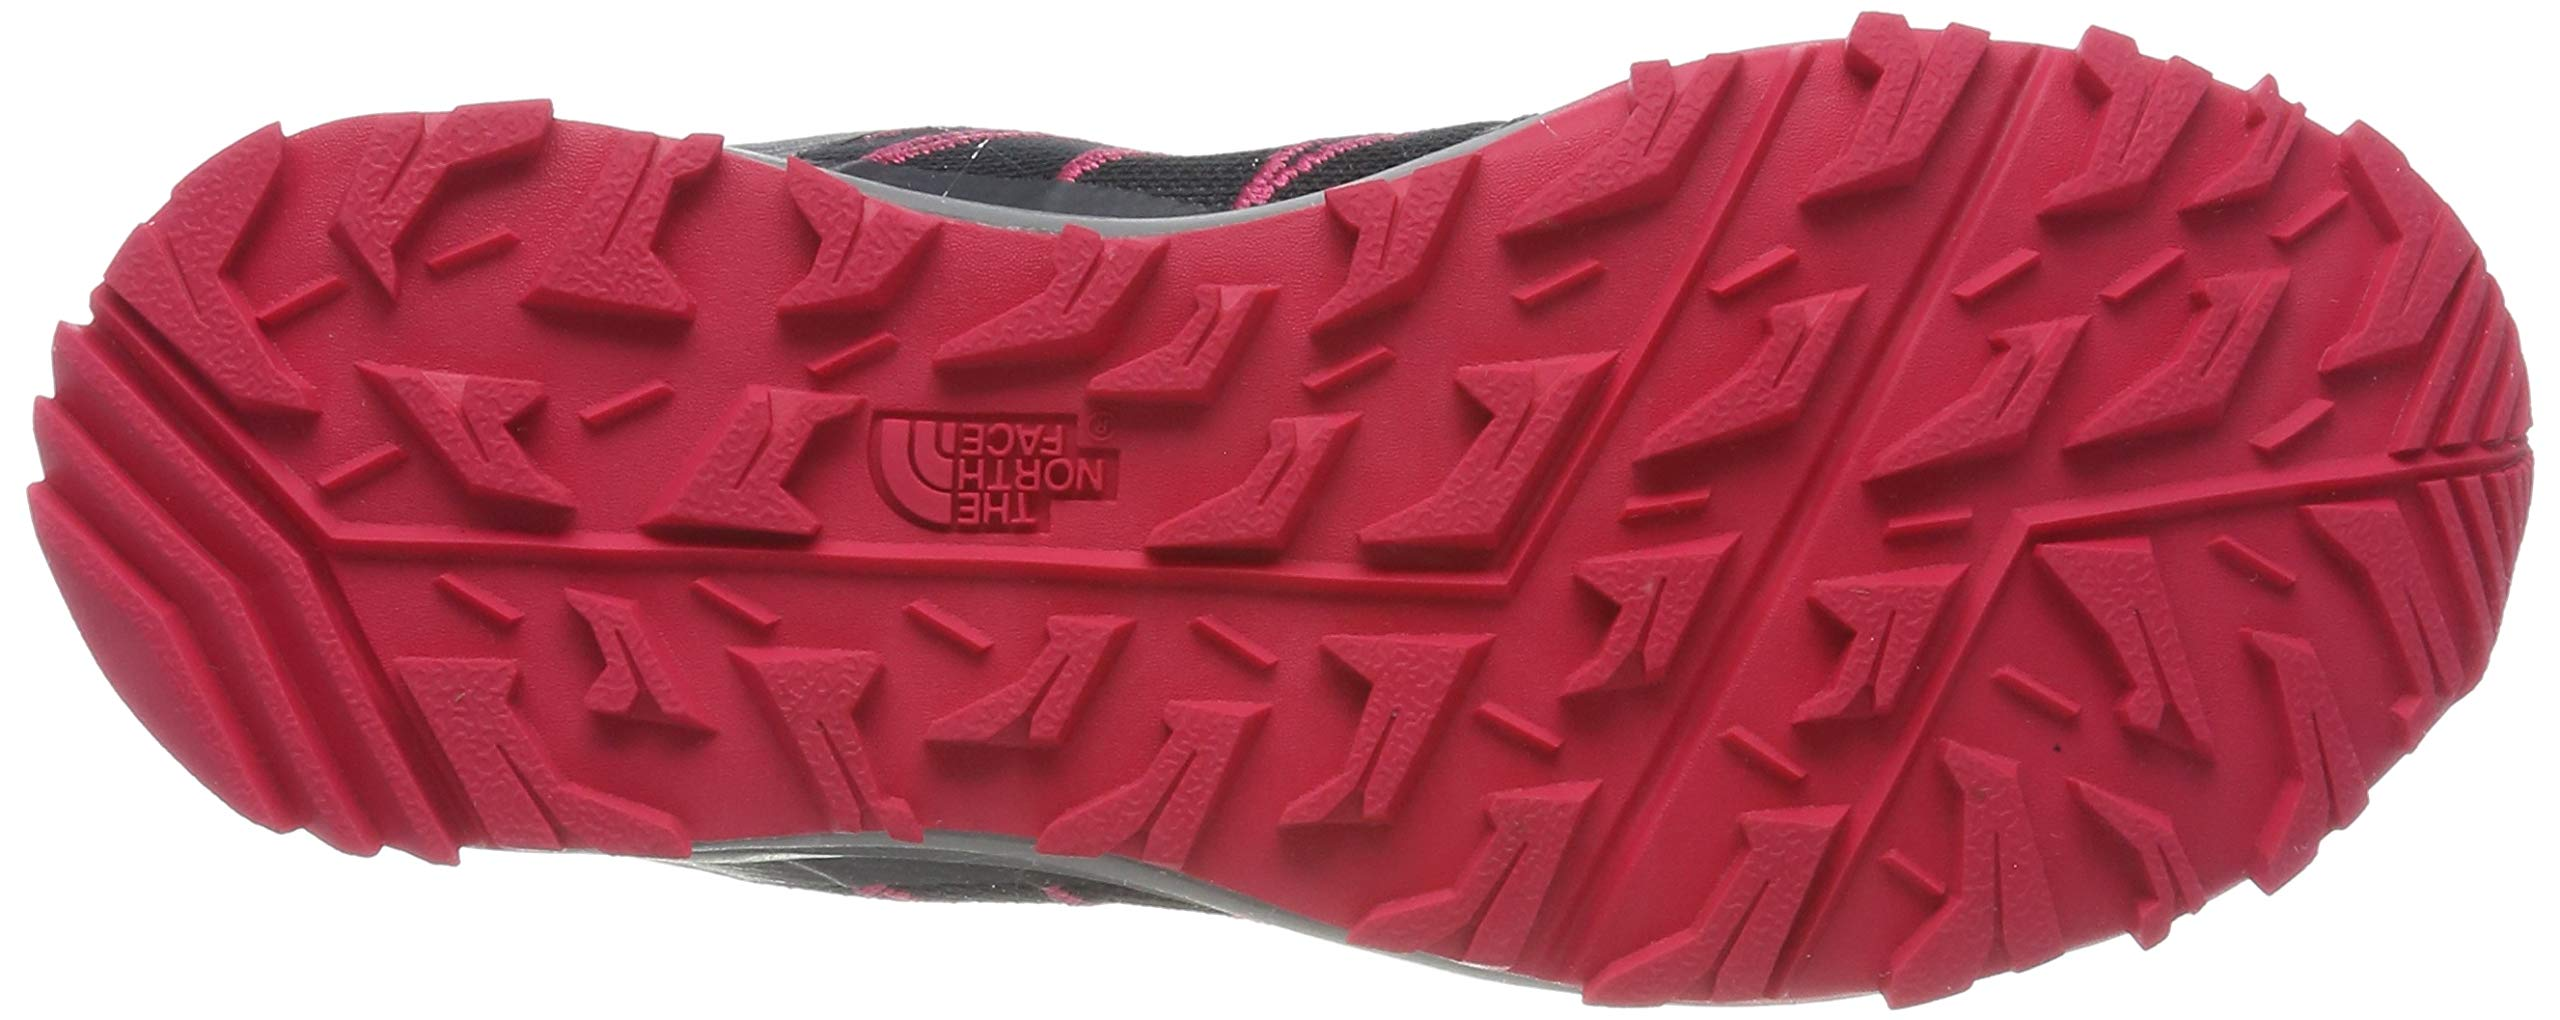 THE NORTH FACE Women's W Litewave Fastpack Ii Low Rise Hiking Boots 3